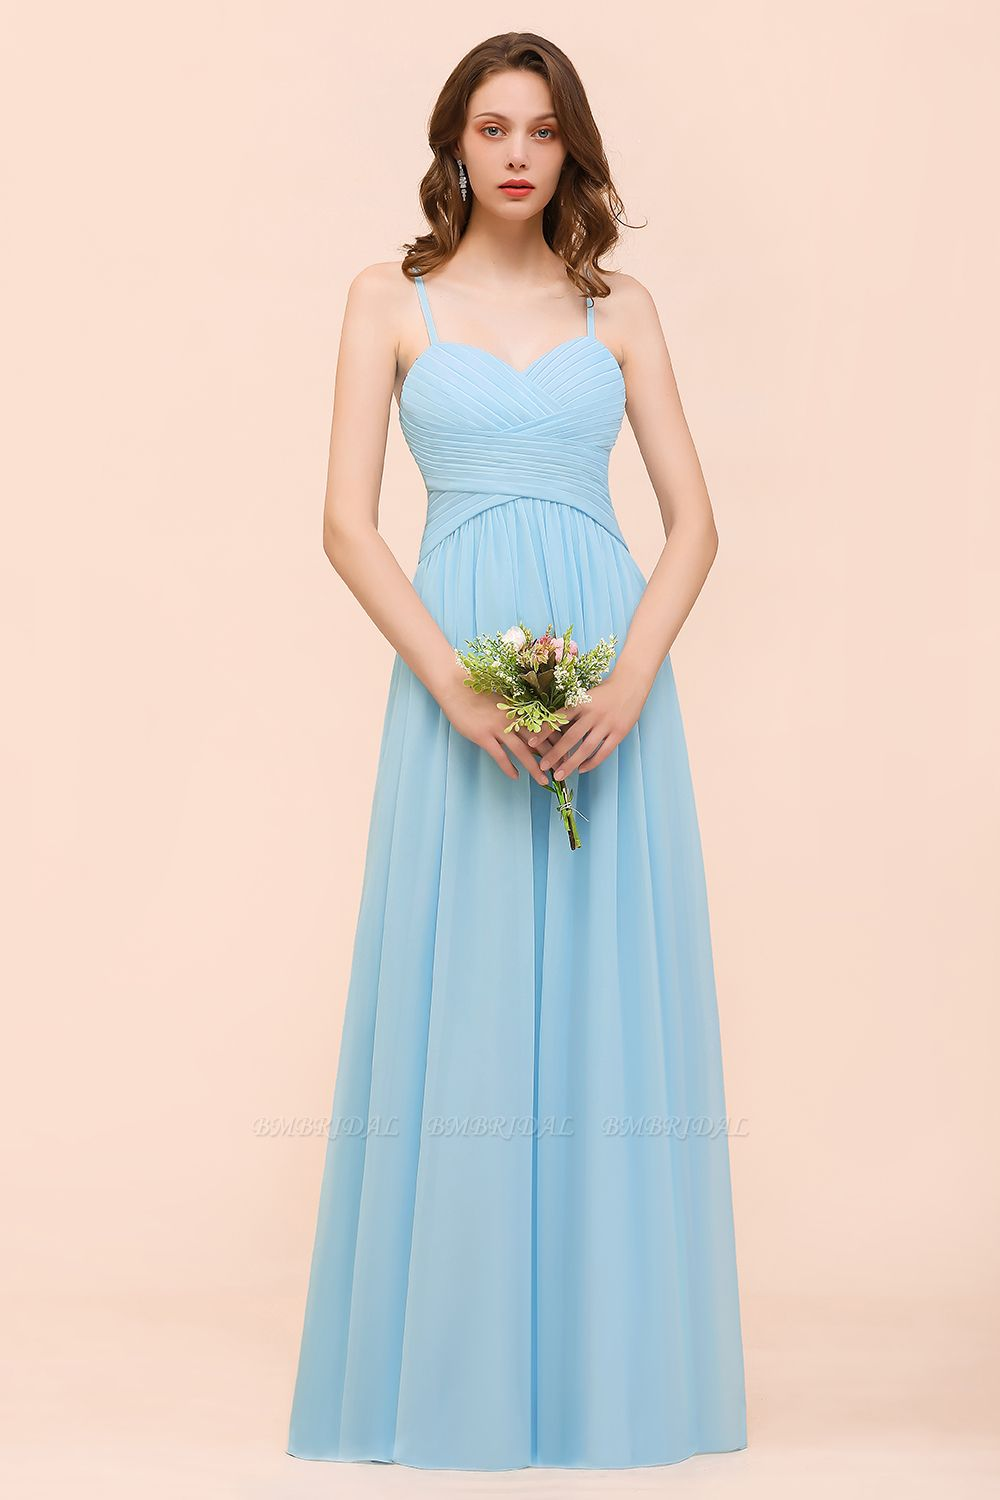 Chic Spaghetti Straps Ruffle Sky Blue Chiffon Bridesmaid Dress Online